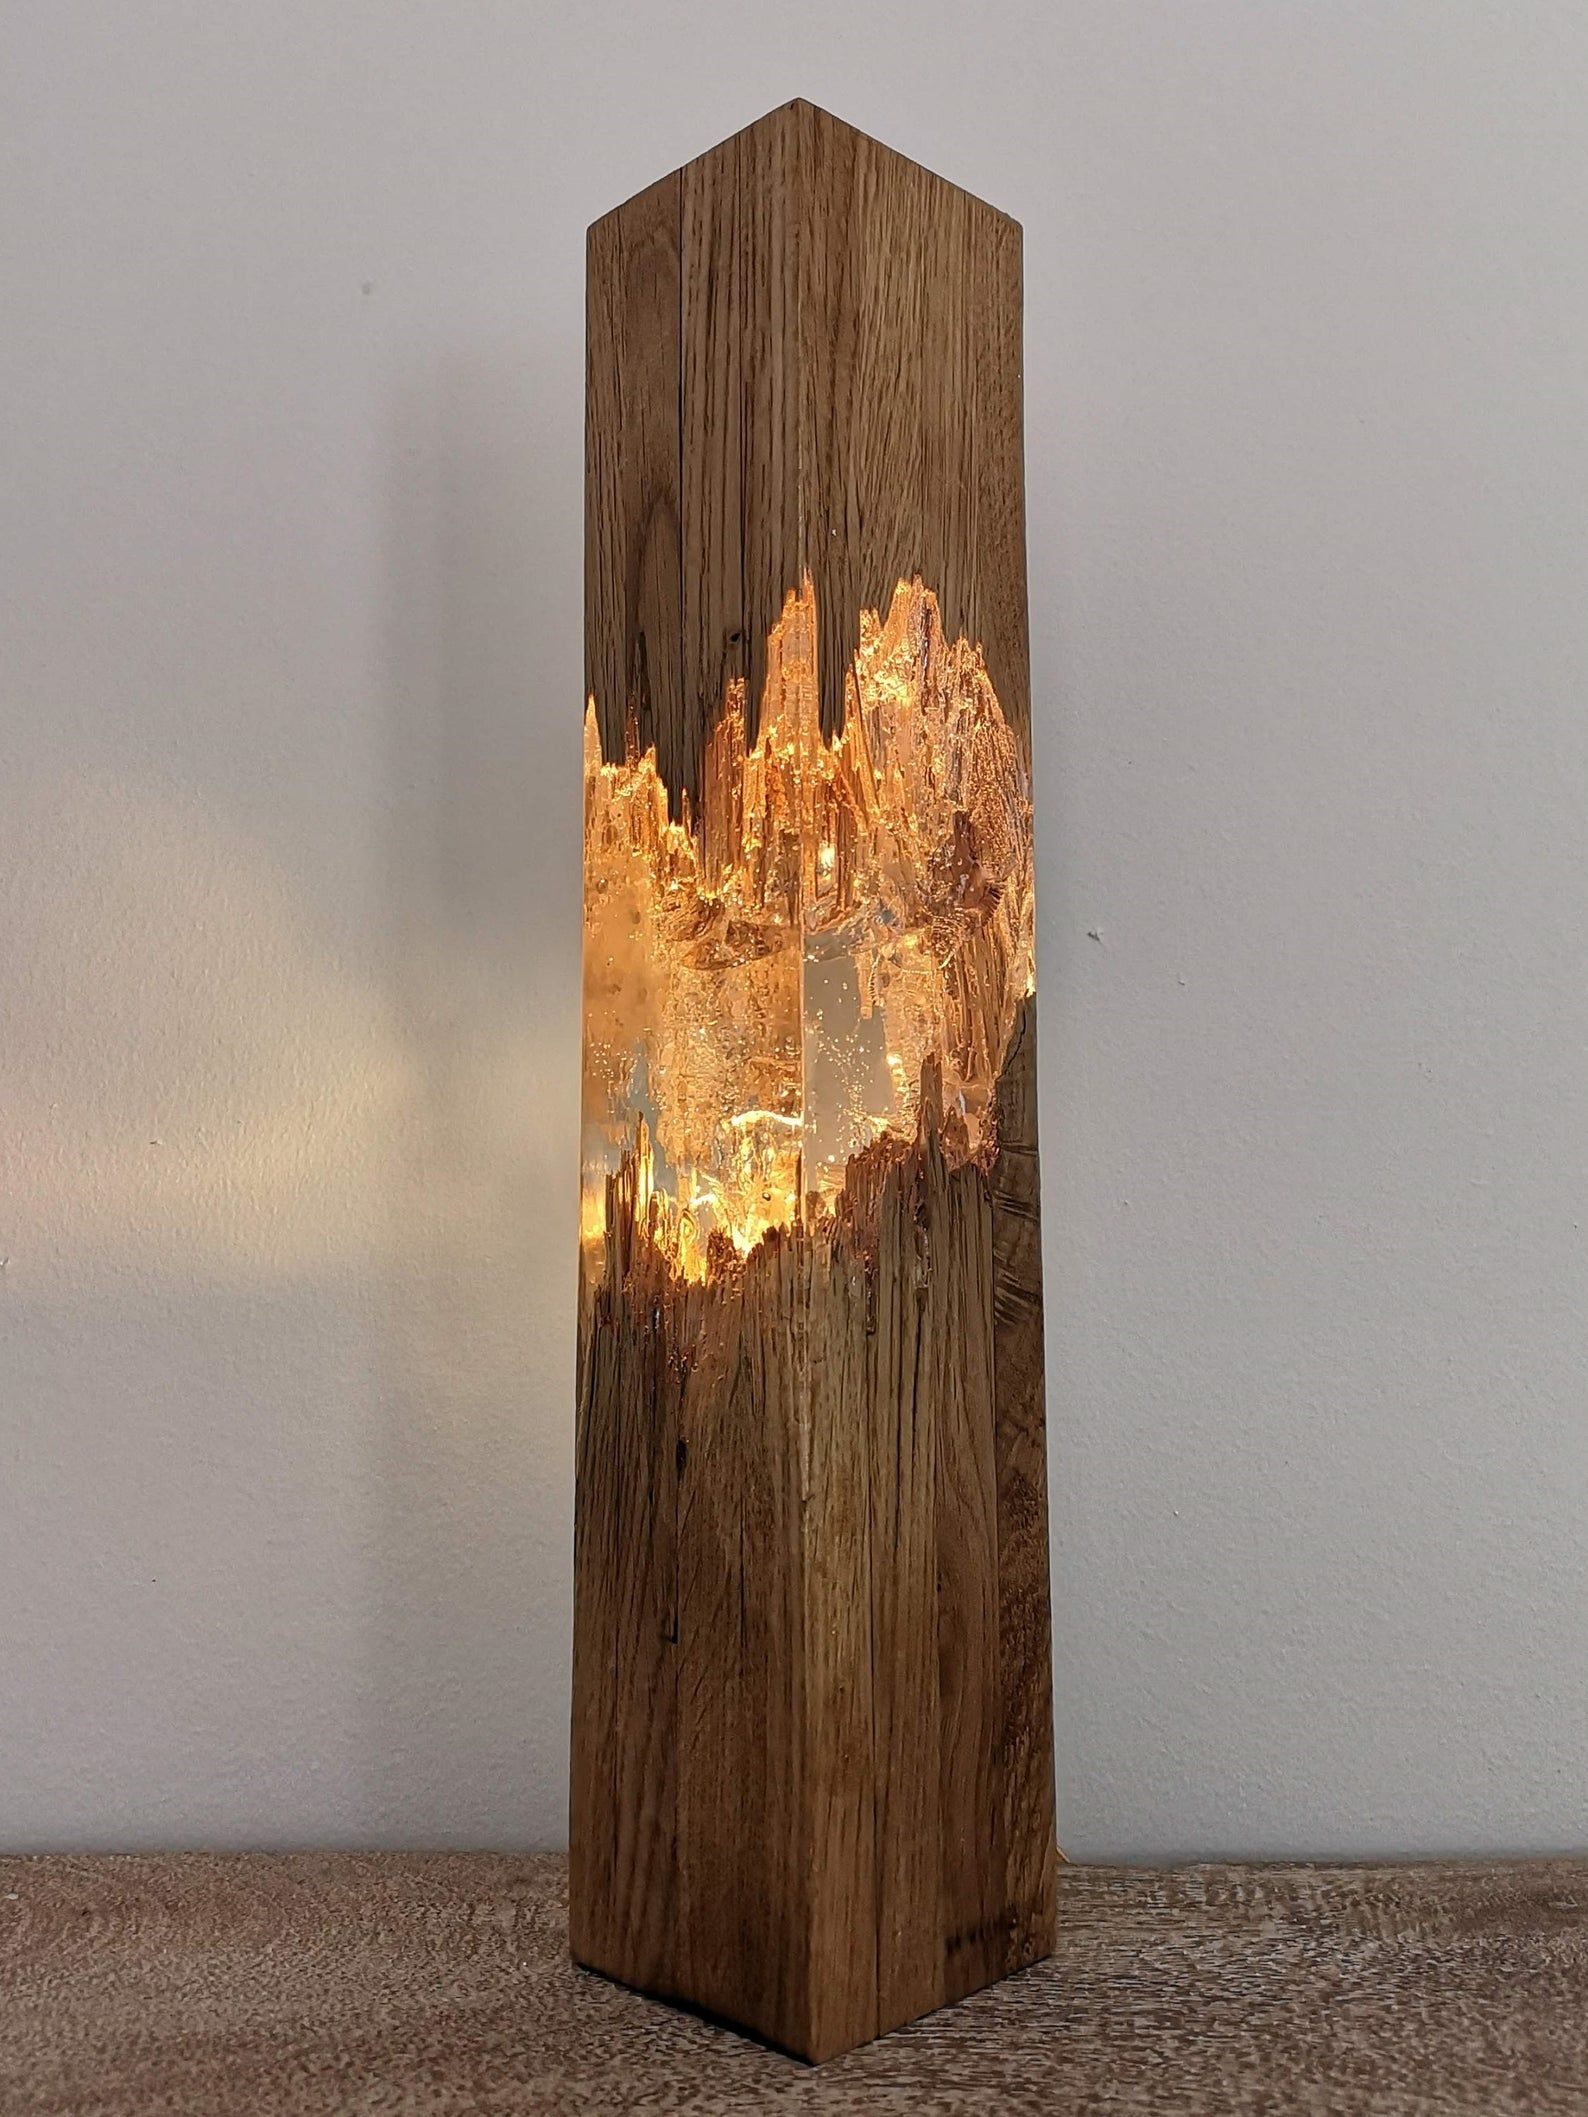 Lampen Aus Holz Epoxy Wood Lamp, Lamp, Night Lamp, Resin Table Decor, Decor Light, | Holzlampe, Lichtdekoration, Lampe